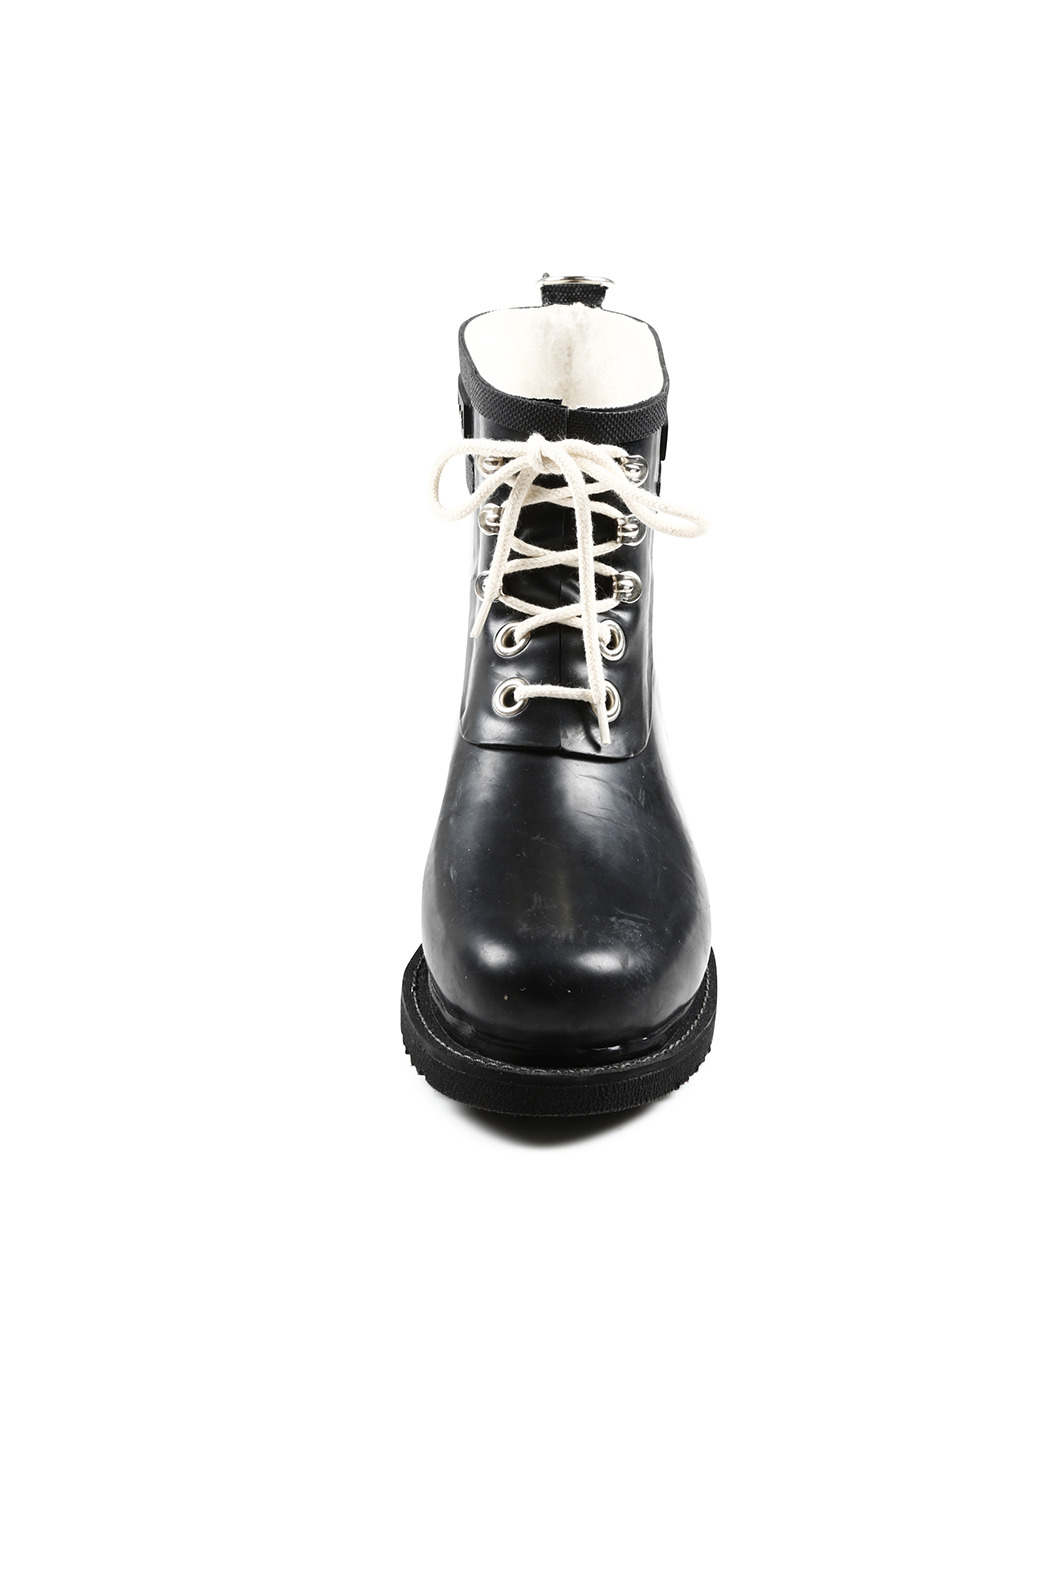 Ilse Jacobsen Short Lace Up Rain Boots from Midtown West by Ame ...